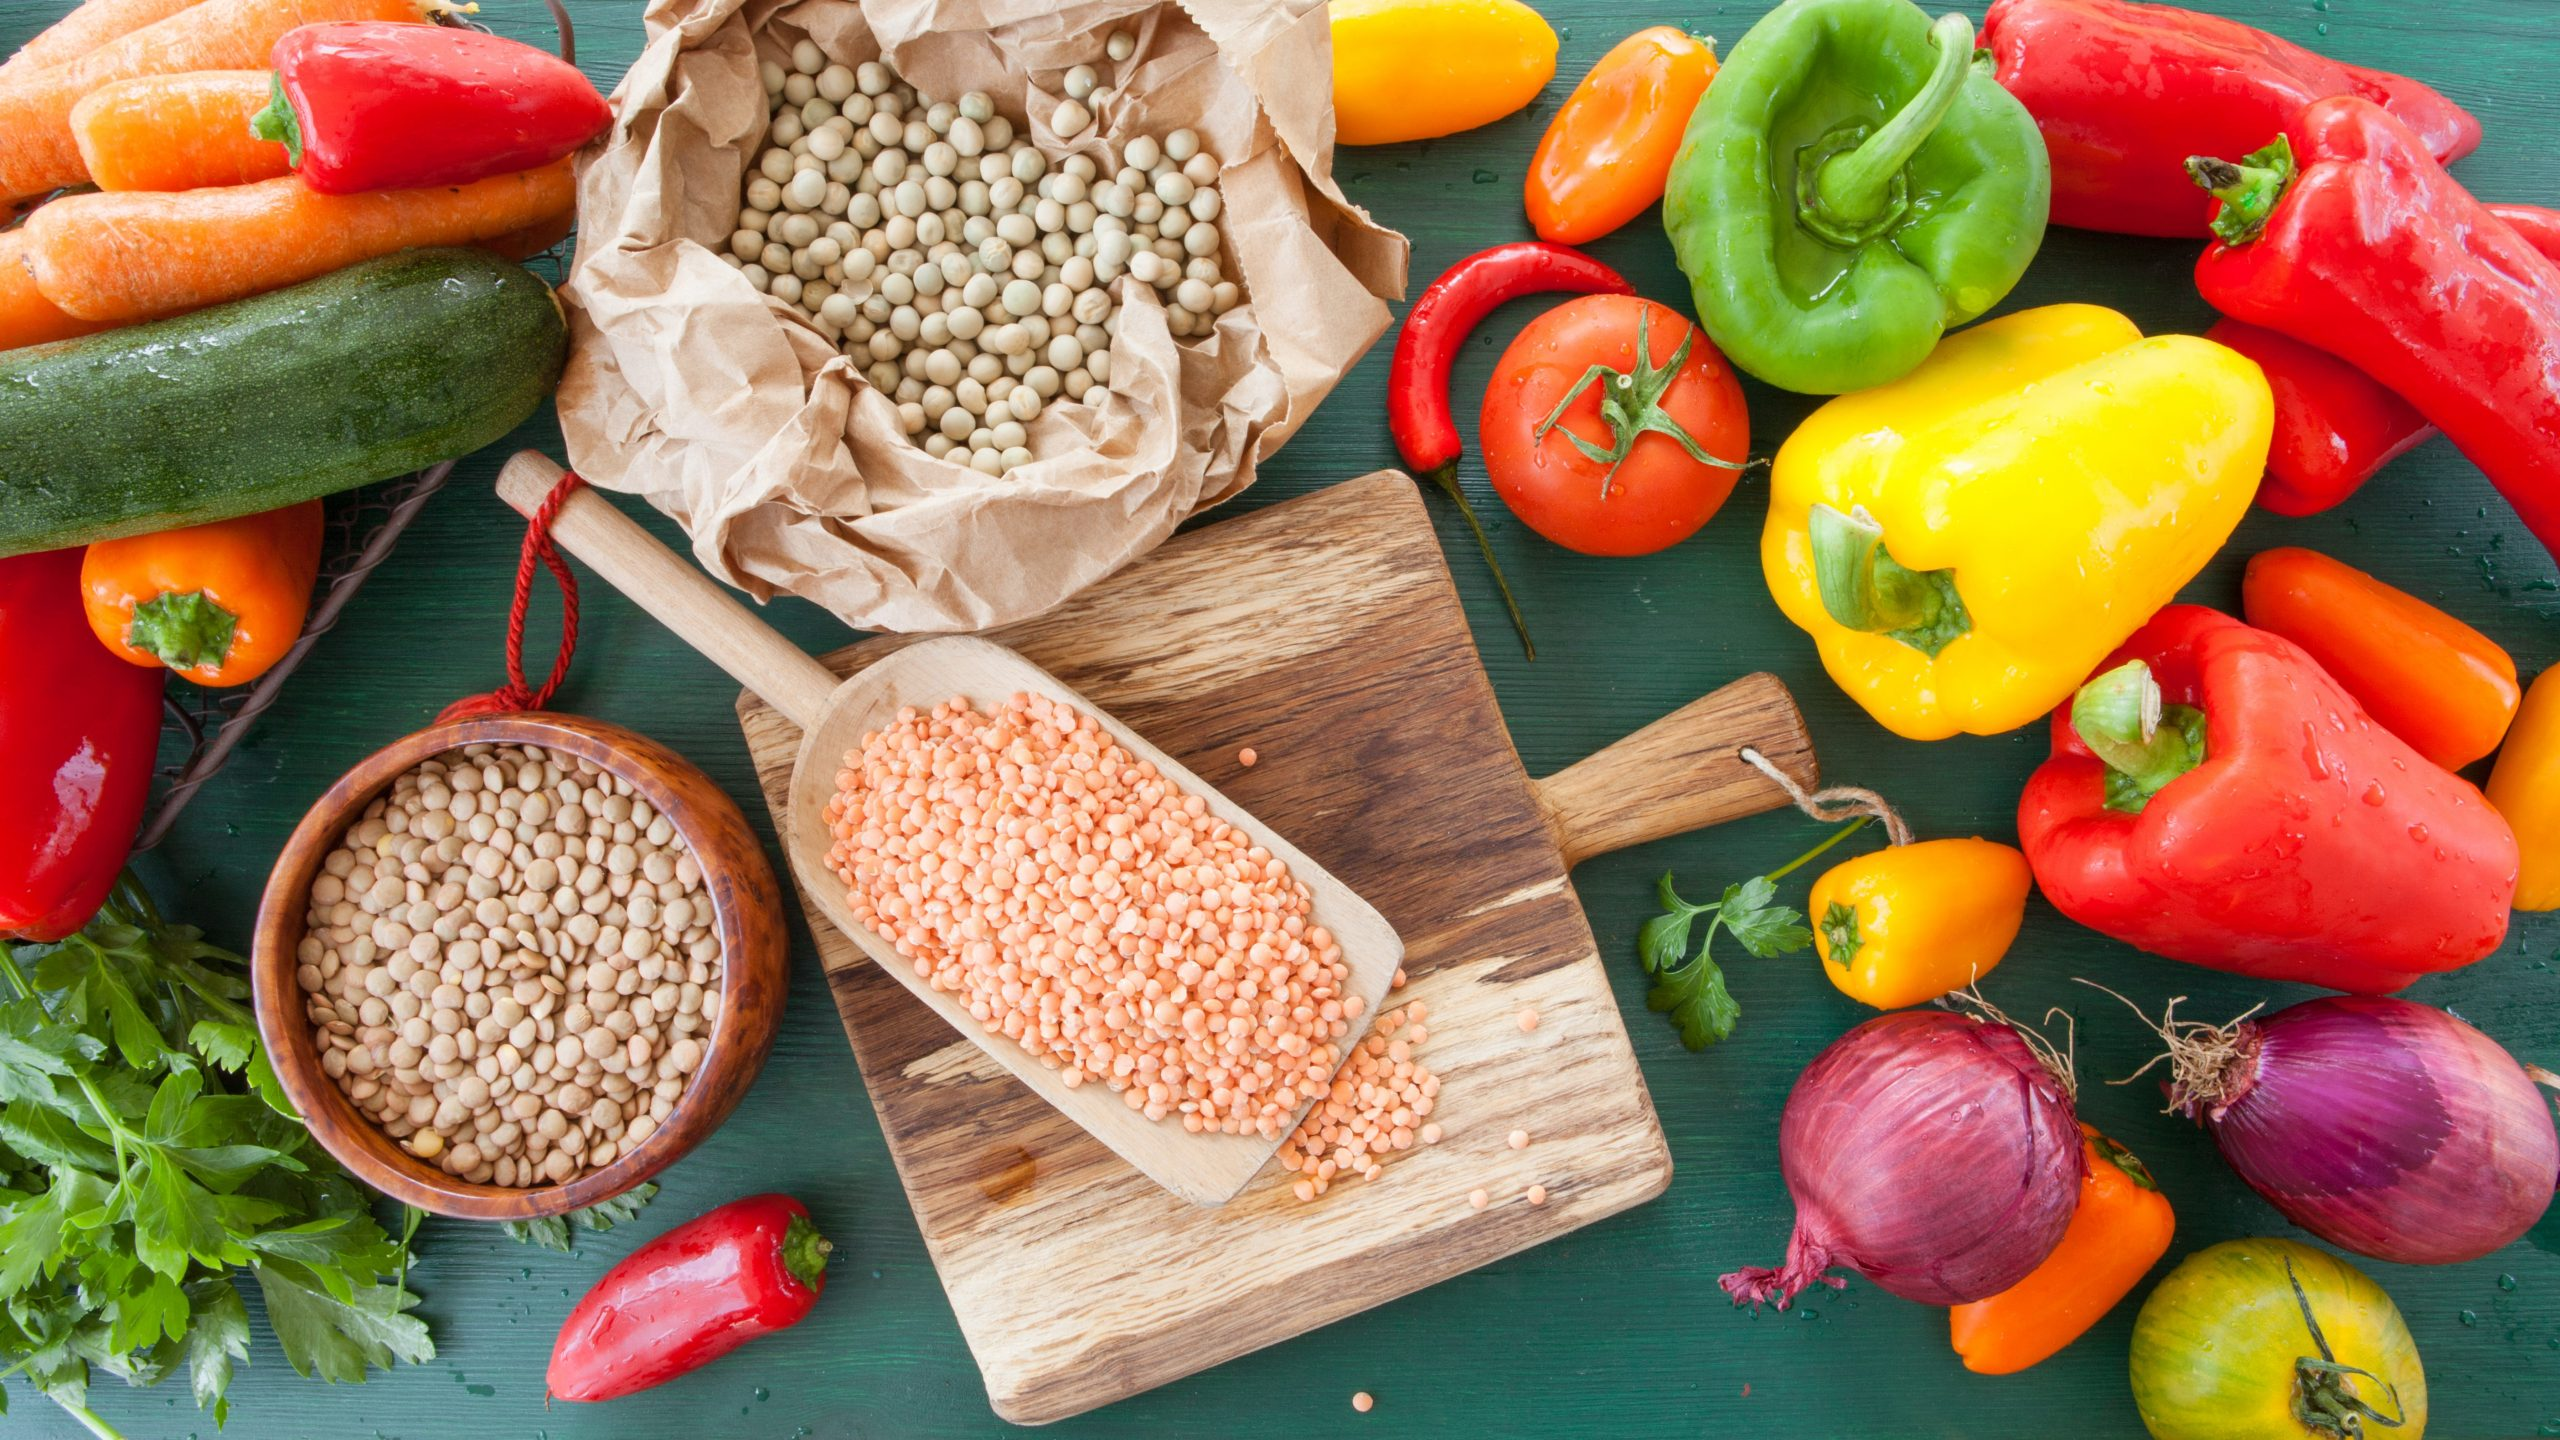 What are carbohydrates - Fresh vegetables and legumes.